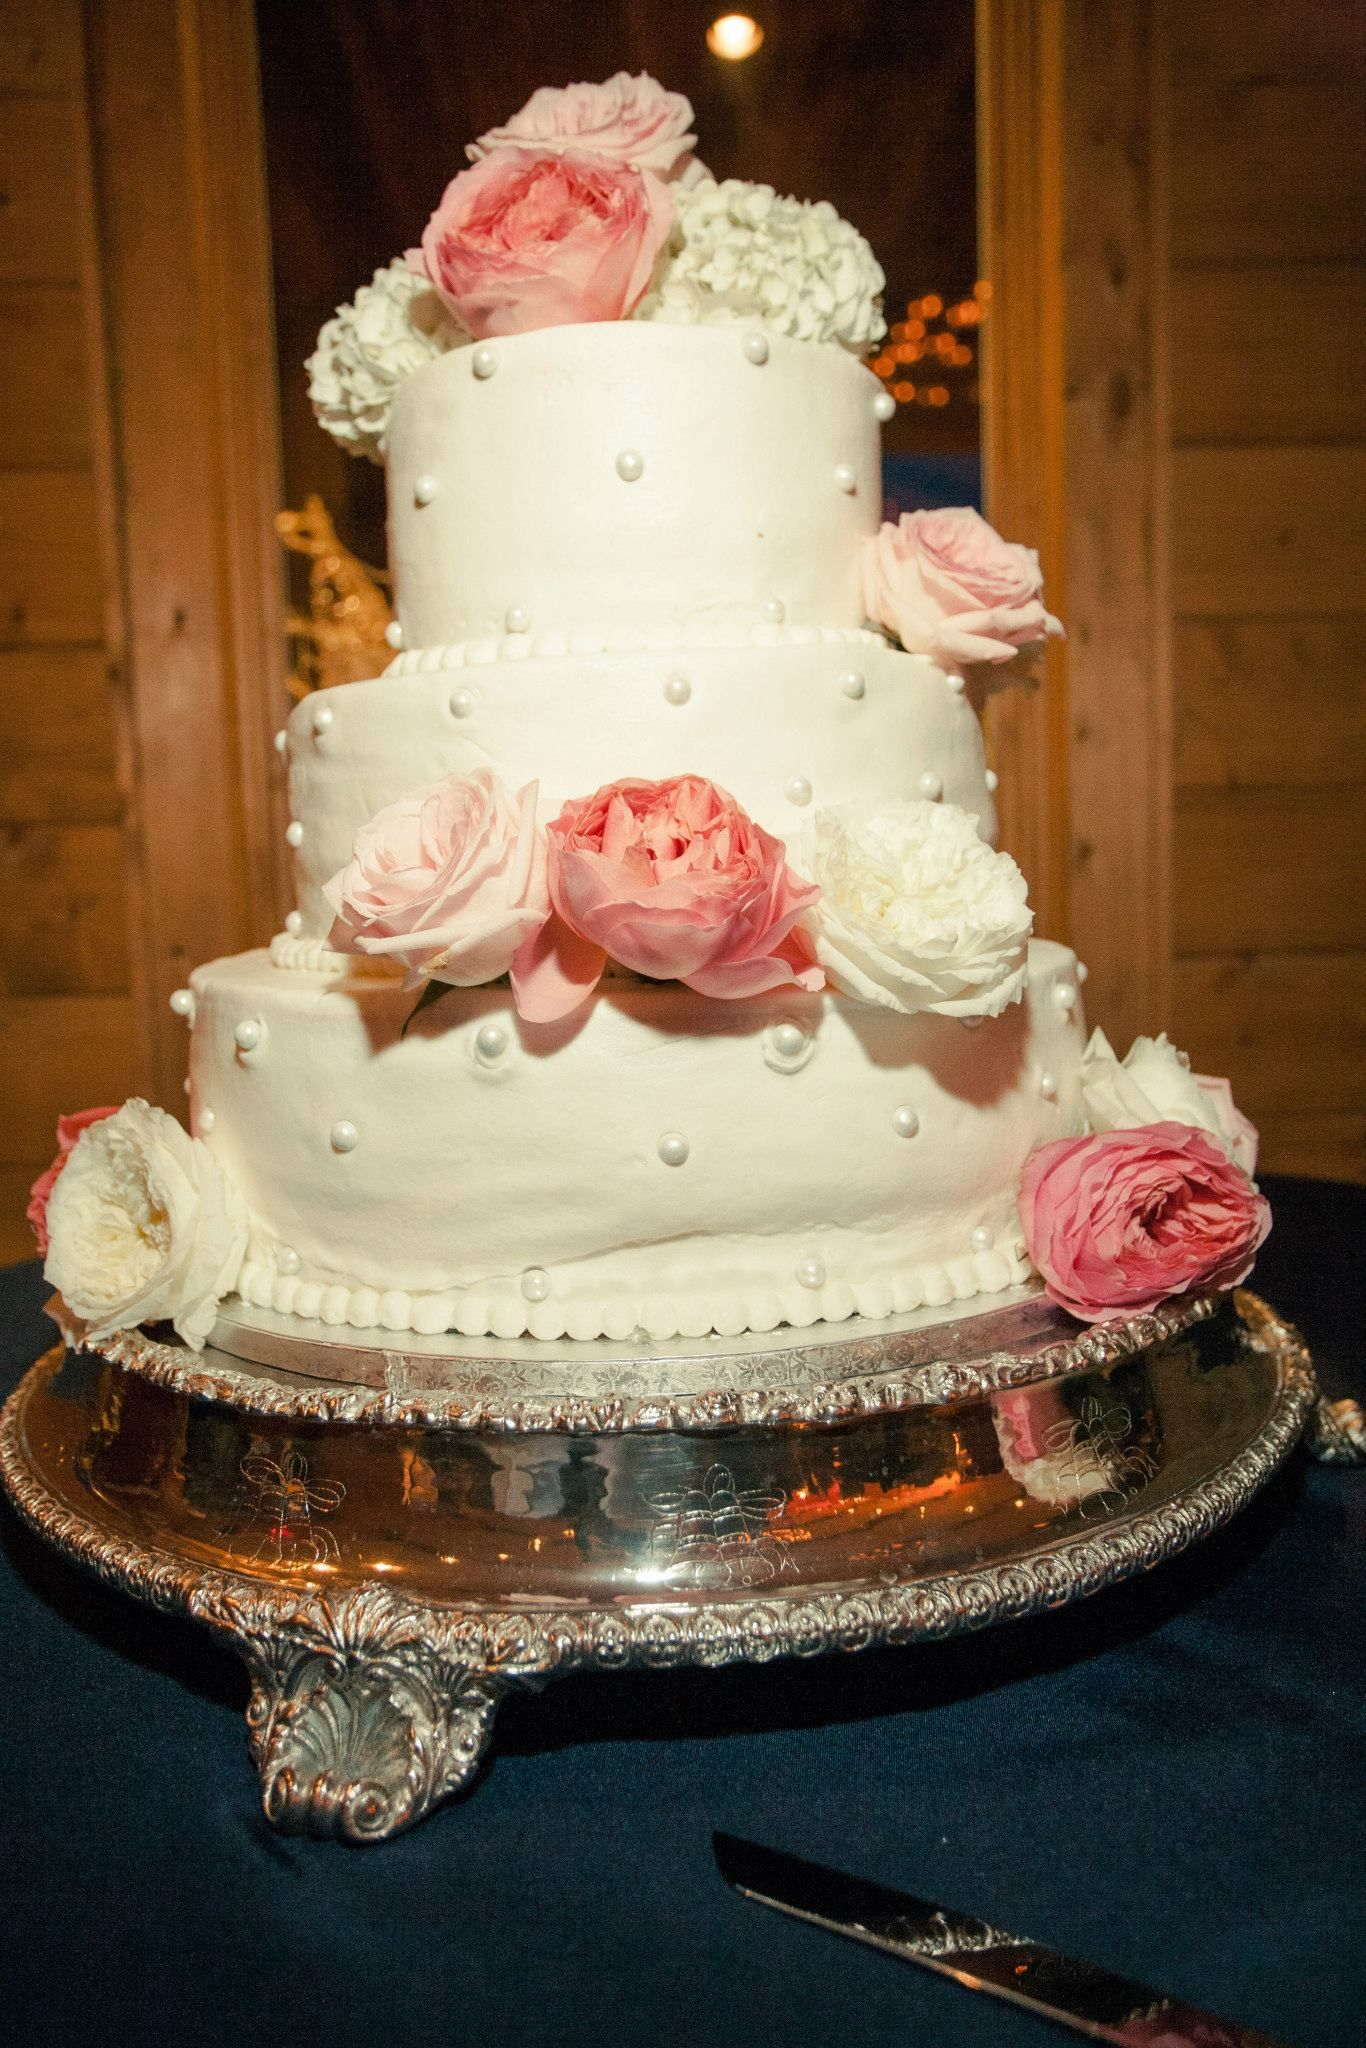 wedding cake - garden roses - cabbage roses - old english roses